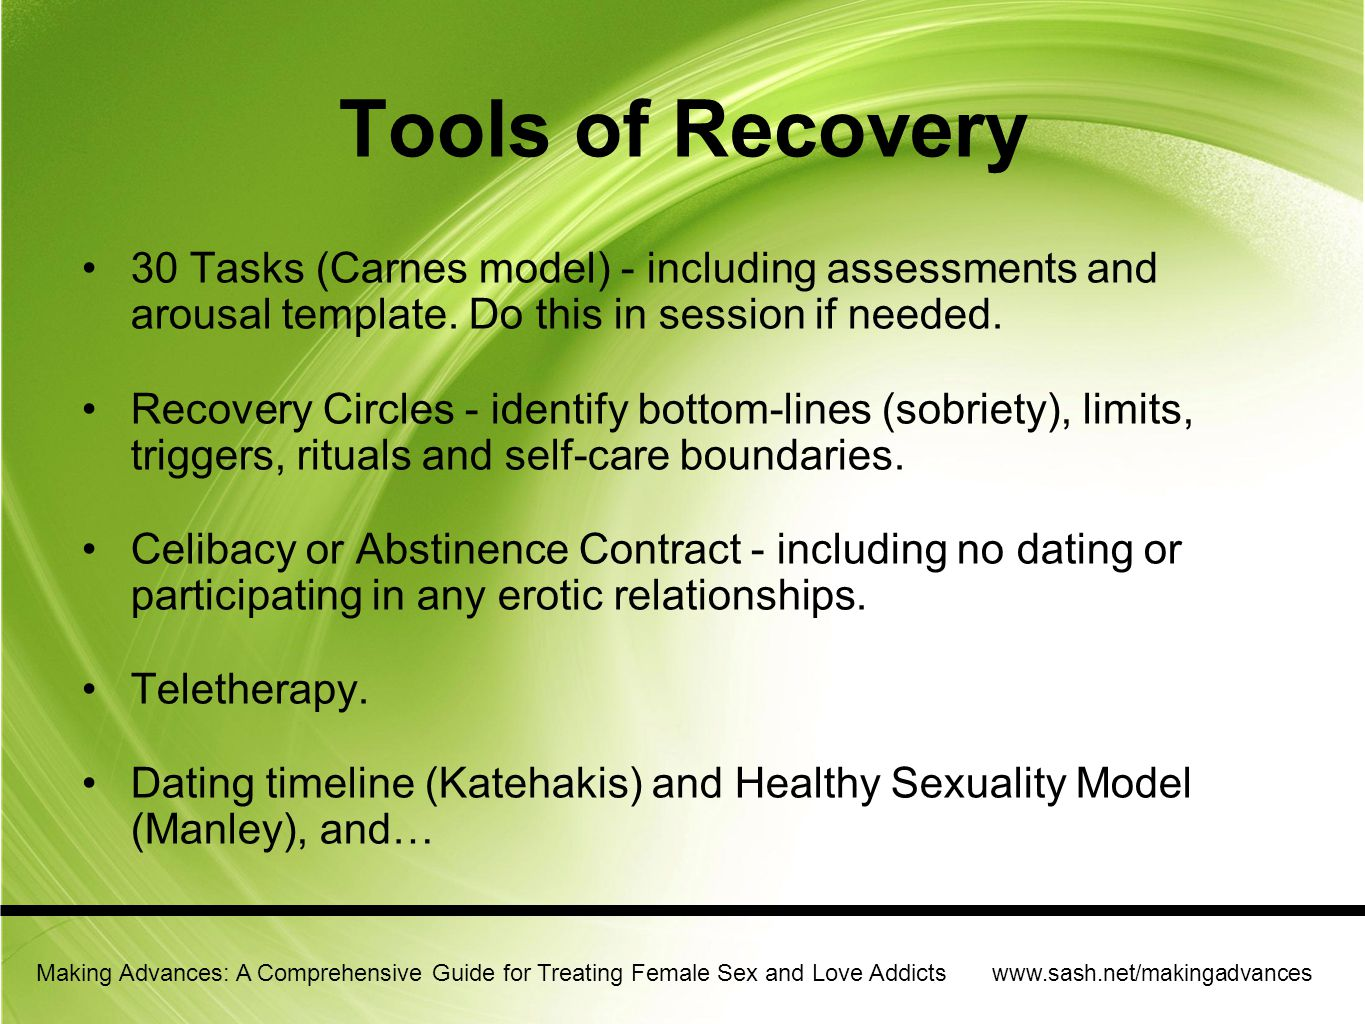 Tools of Recovery 30 Tasks (Carnes model) - including assessments and arousal template. Do this in session if needed.